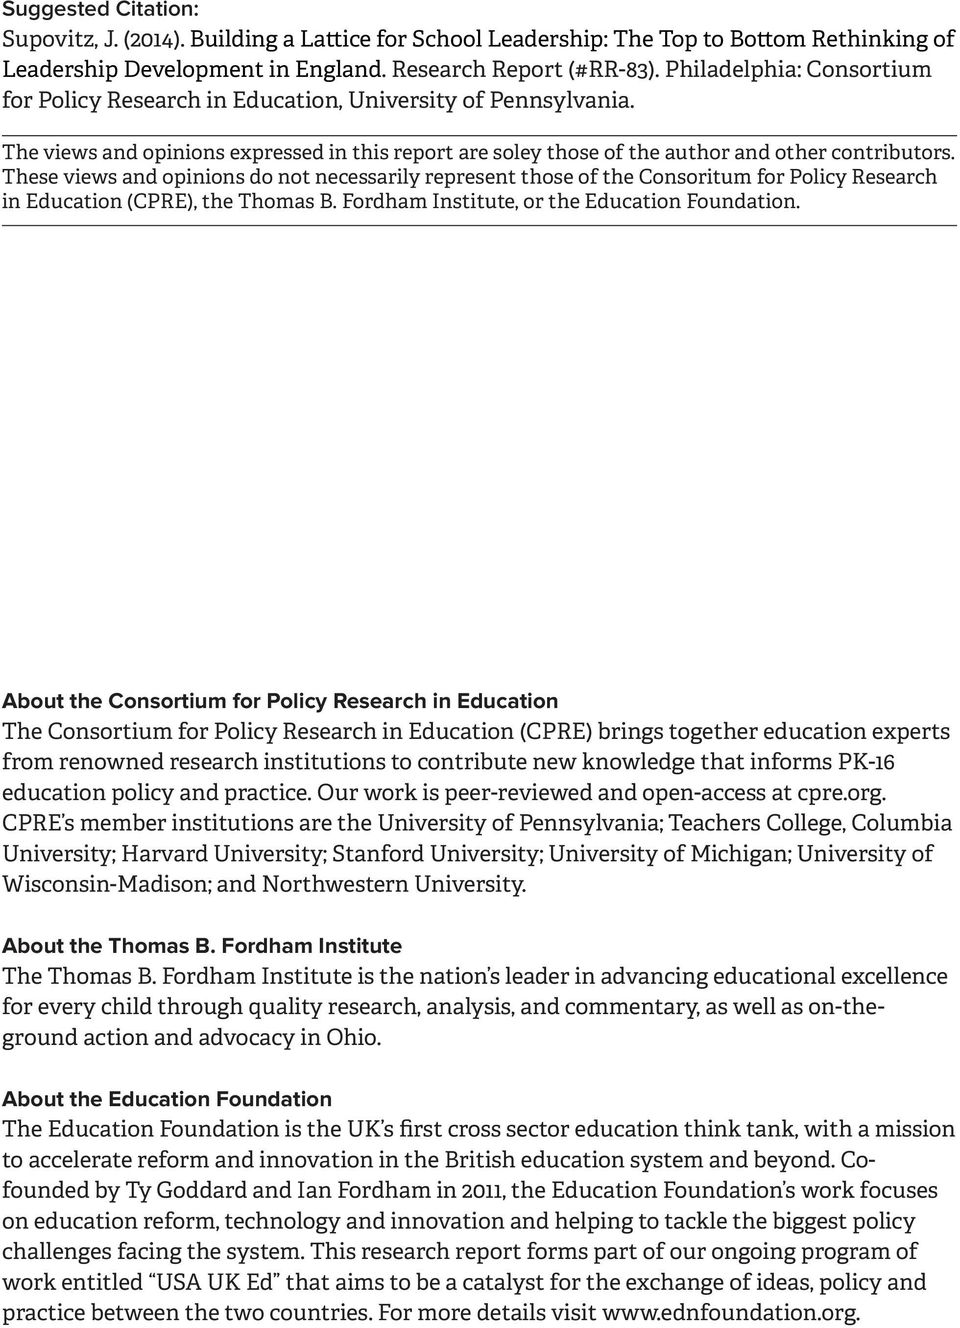 These views and opinions do not necessarily represent those of the Consoritum for Policy Research in Education (CPRE), the Thomas B. Fordham Institute, or the Education Foundation.